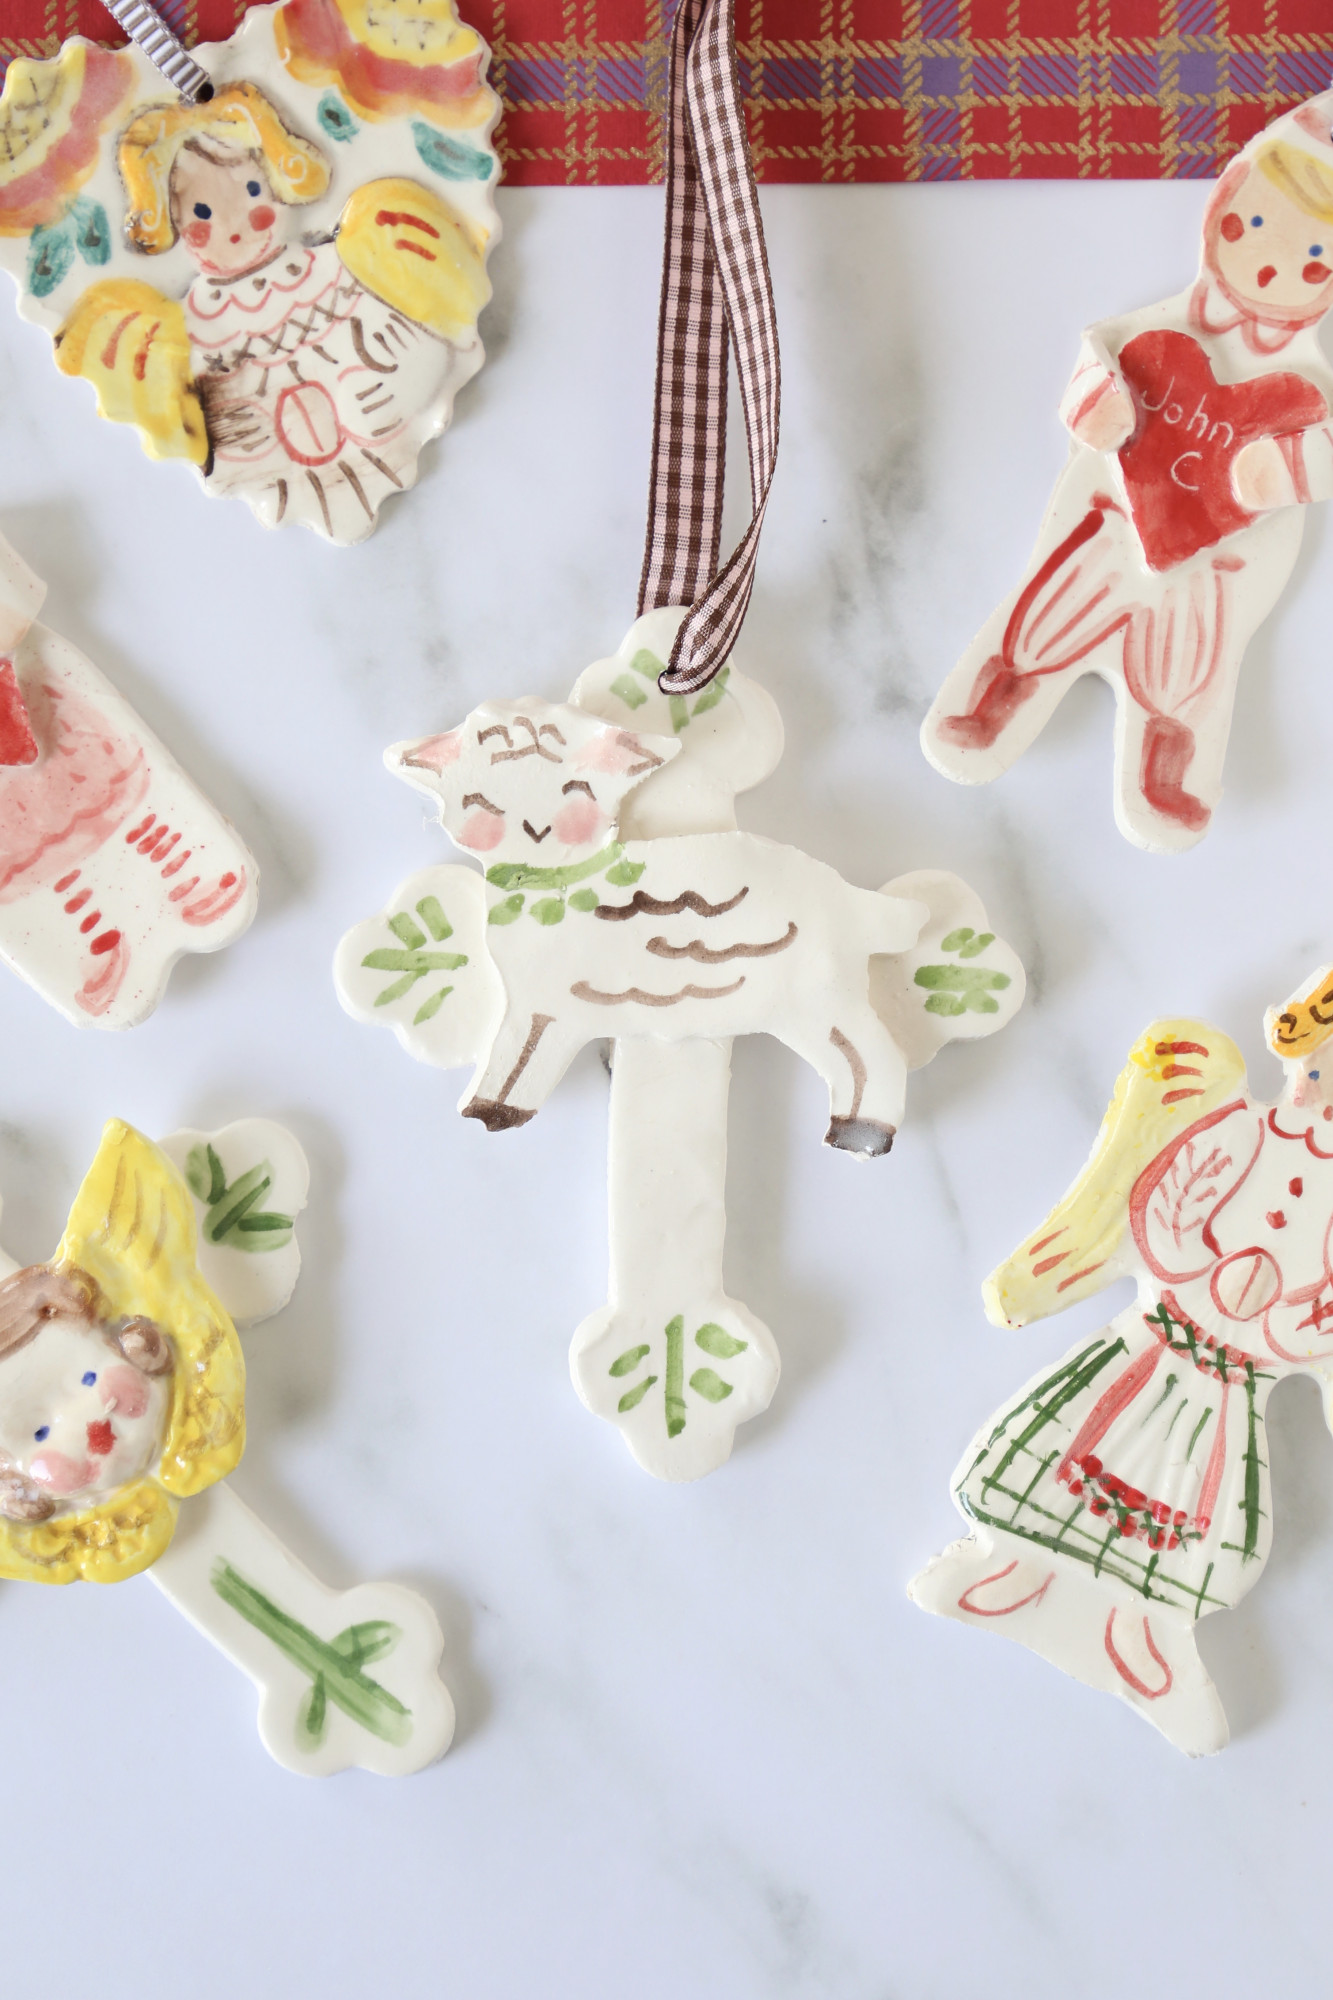 Tricia Lowenfield Ornaments